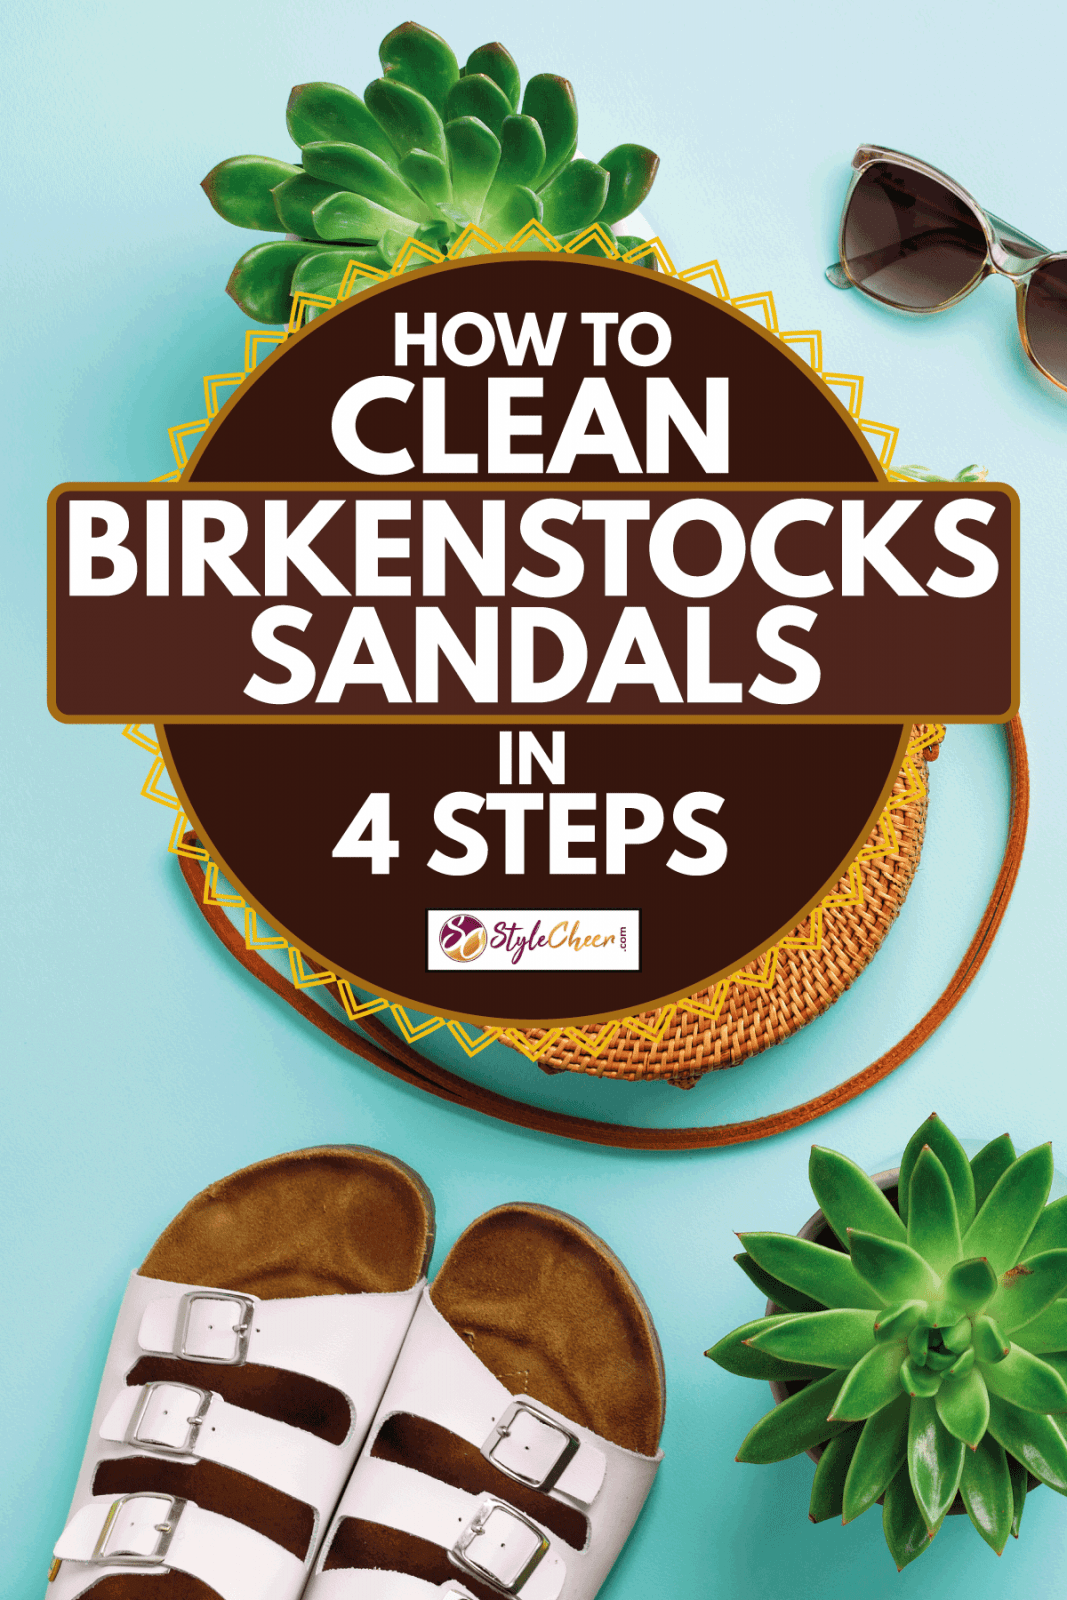 Stylish rattan bag, birkenstocks, succulent and sunglasses on blue background, How To Clean Birkenstocks Sandals in 4 Steps